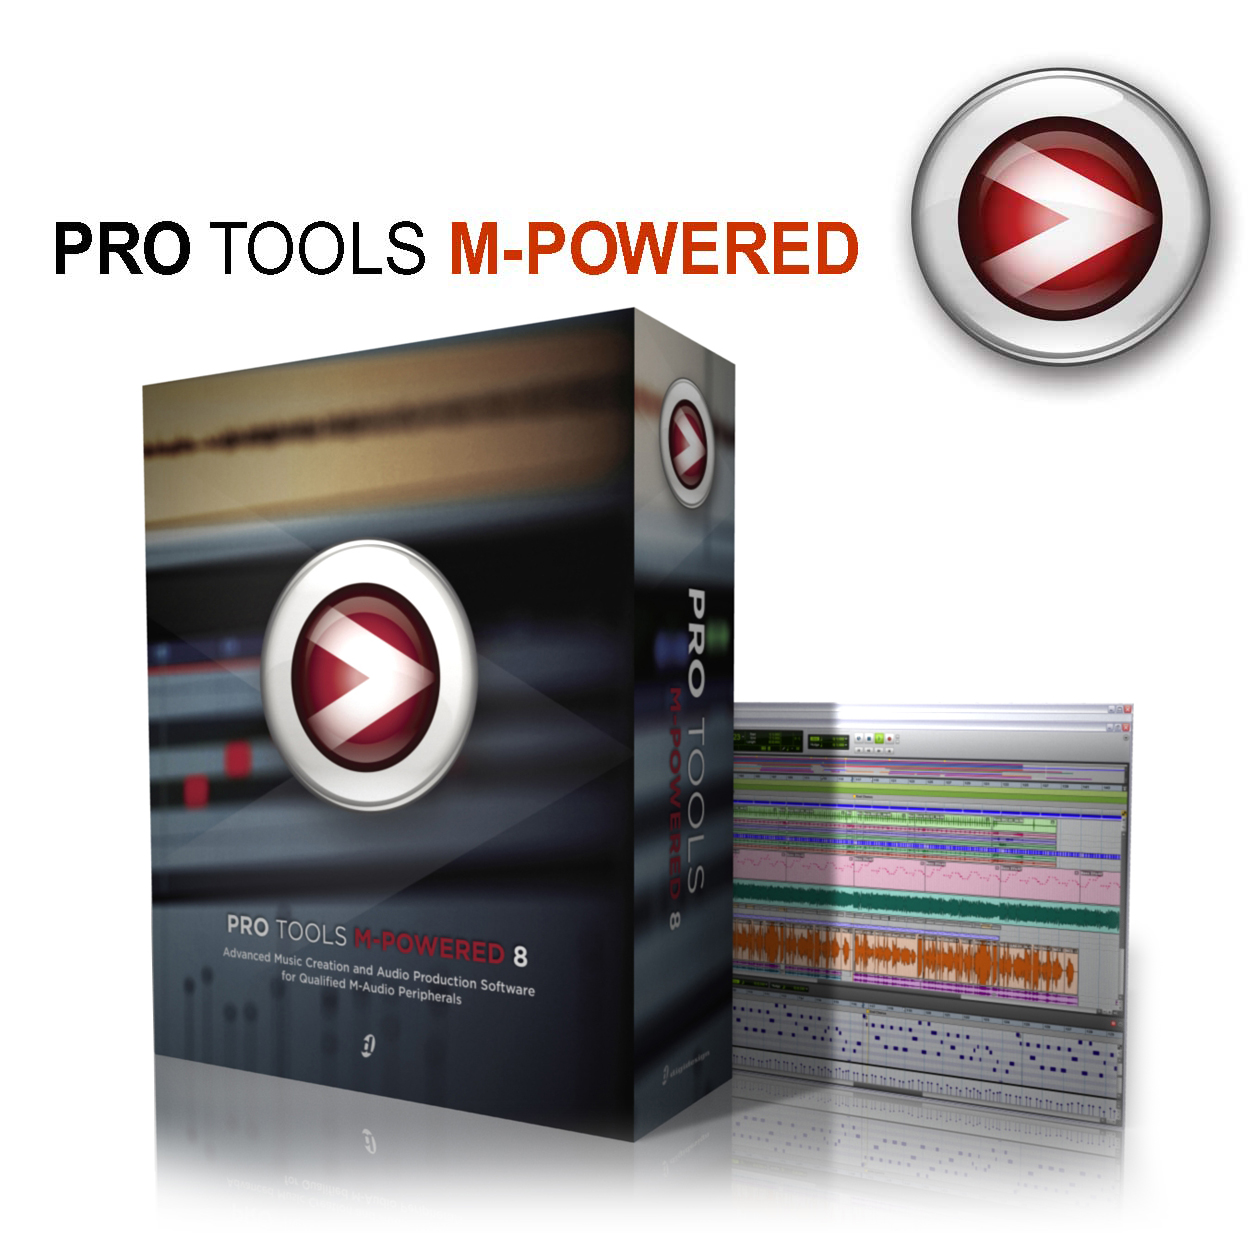 Pro tools m powered 8 keygen crack - free.